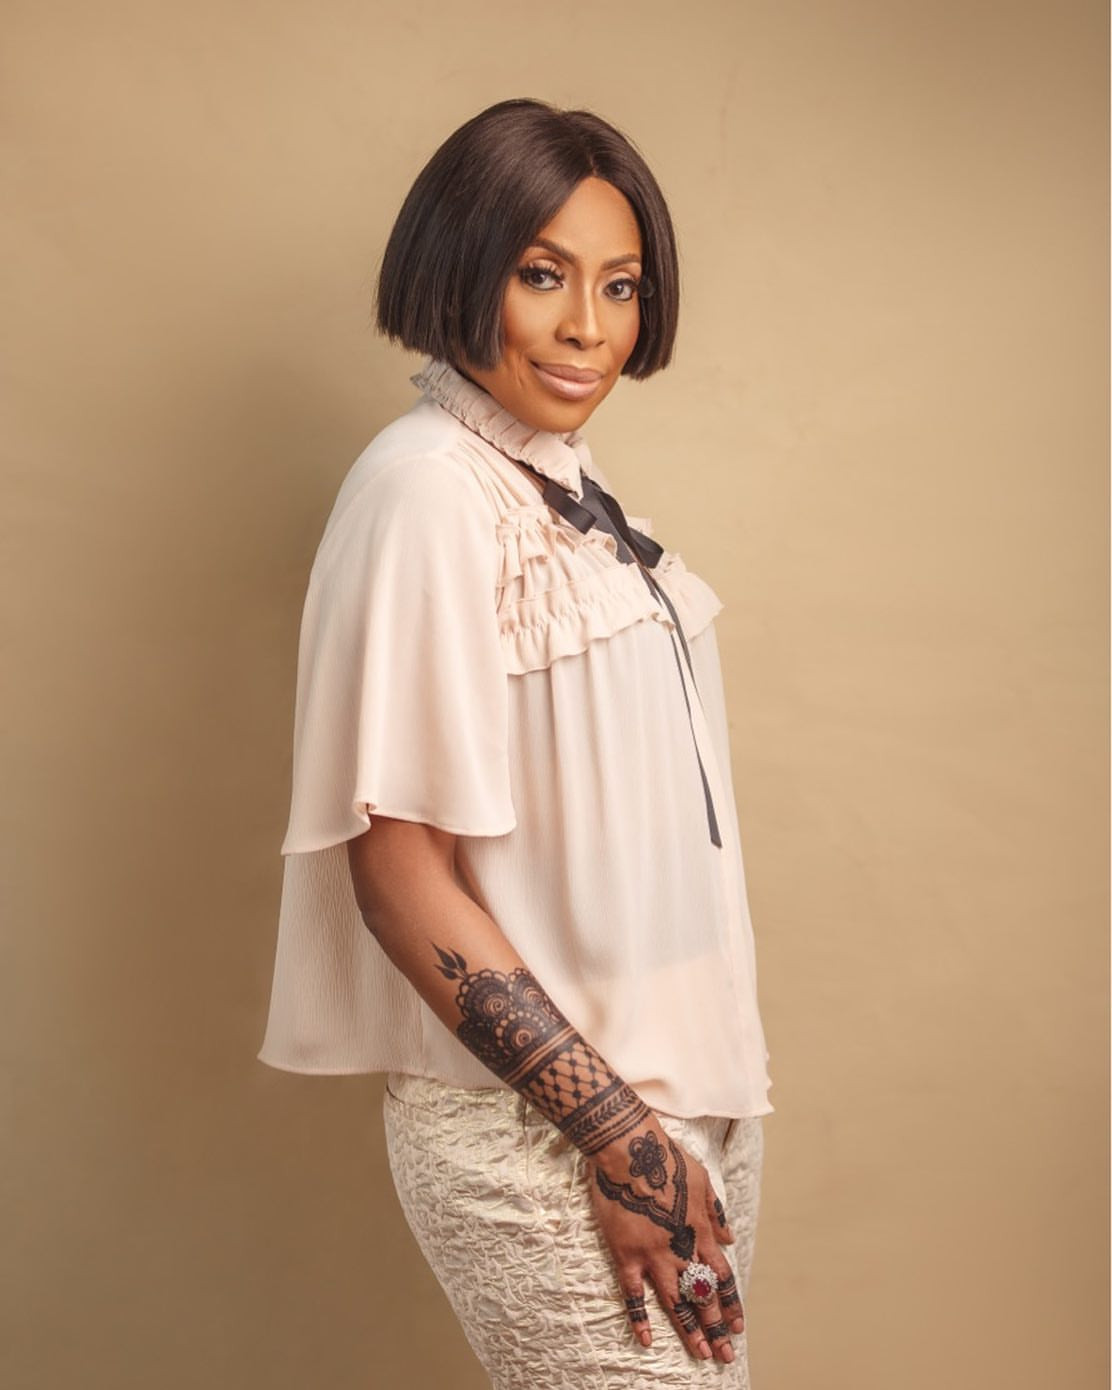 Stunning photos of media mogul, Mo Abudu